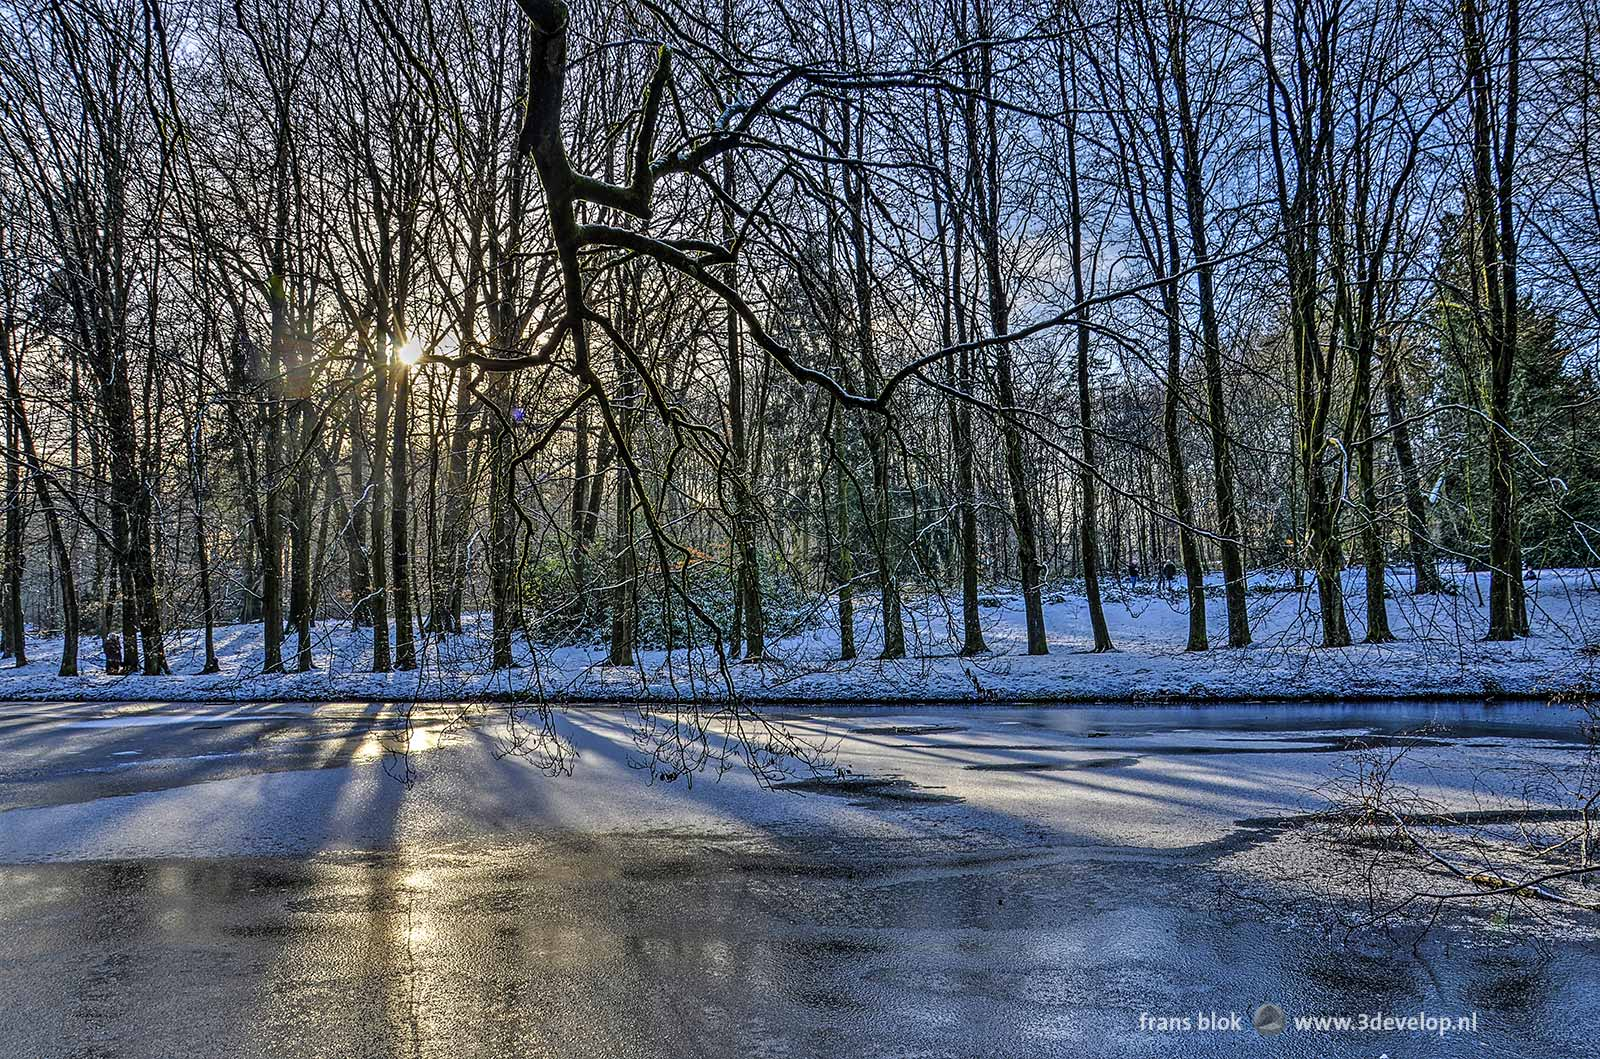 Sun shining through the trees in Sonsbeek Park in Arnhem, The Netherlands, casting shadows on a frozen and partly snow-covered pond.